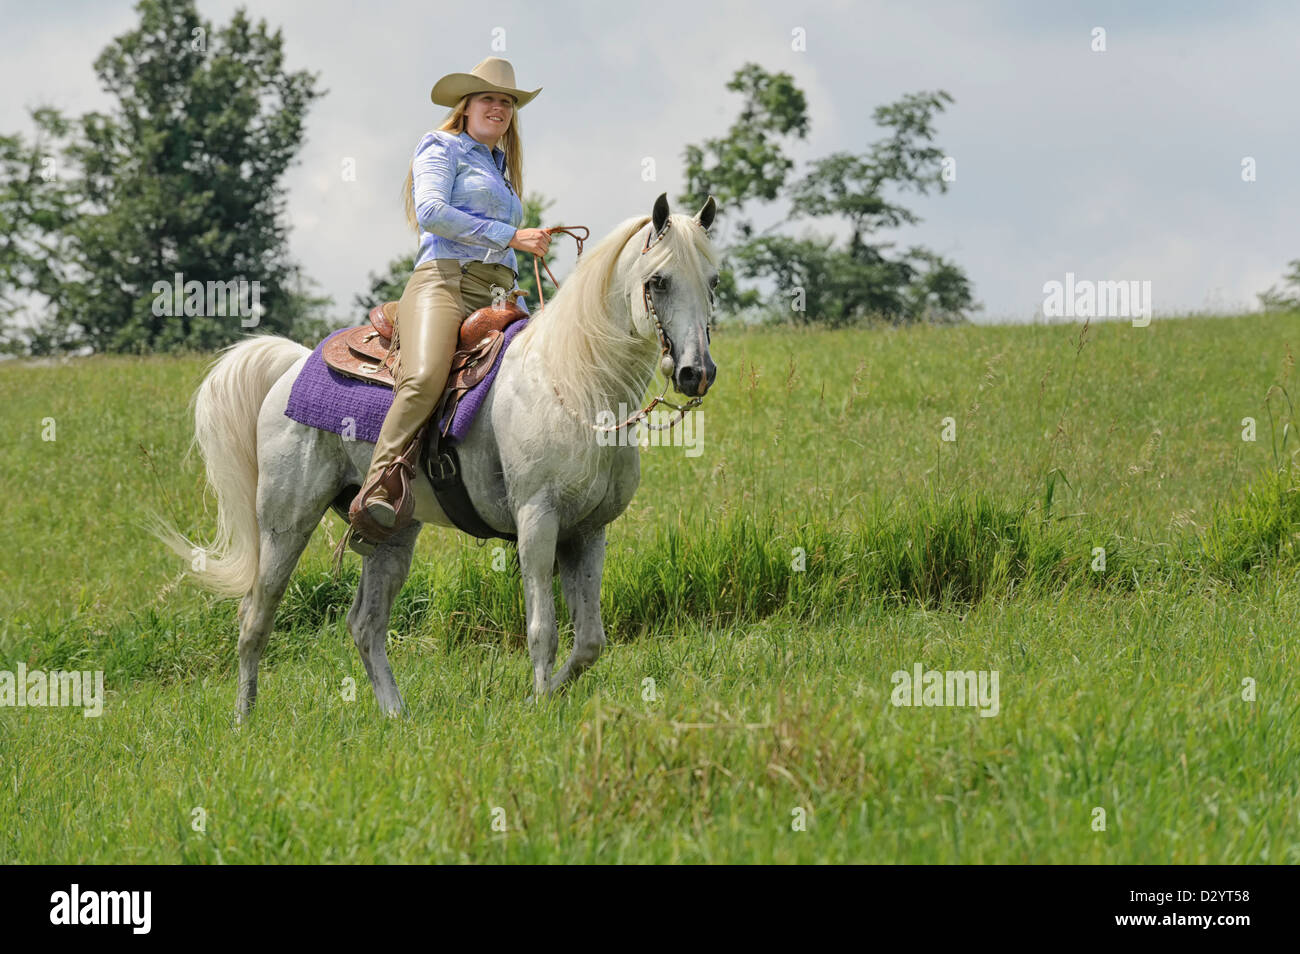 Style Of Horseback Riding High Resolution Stock Photography And Images Alamy